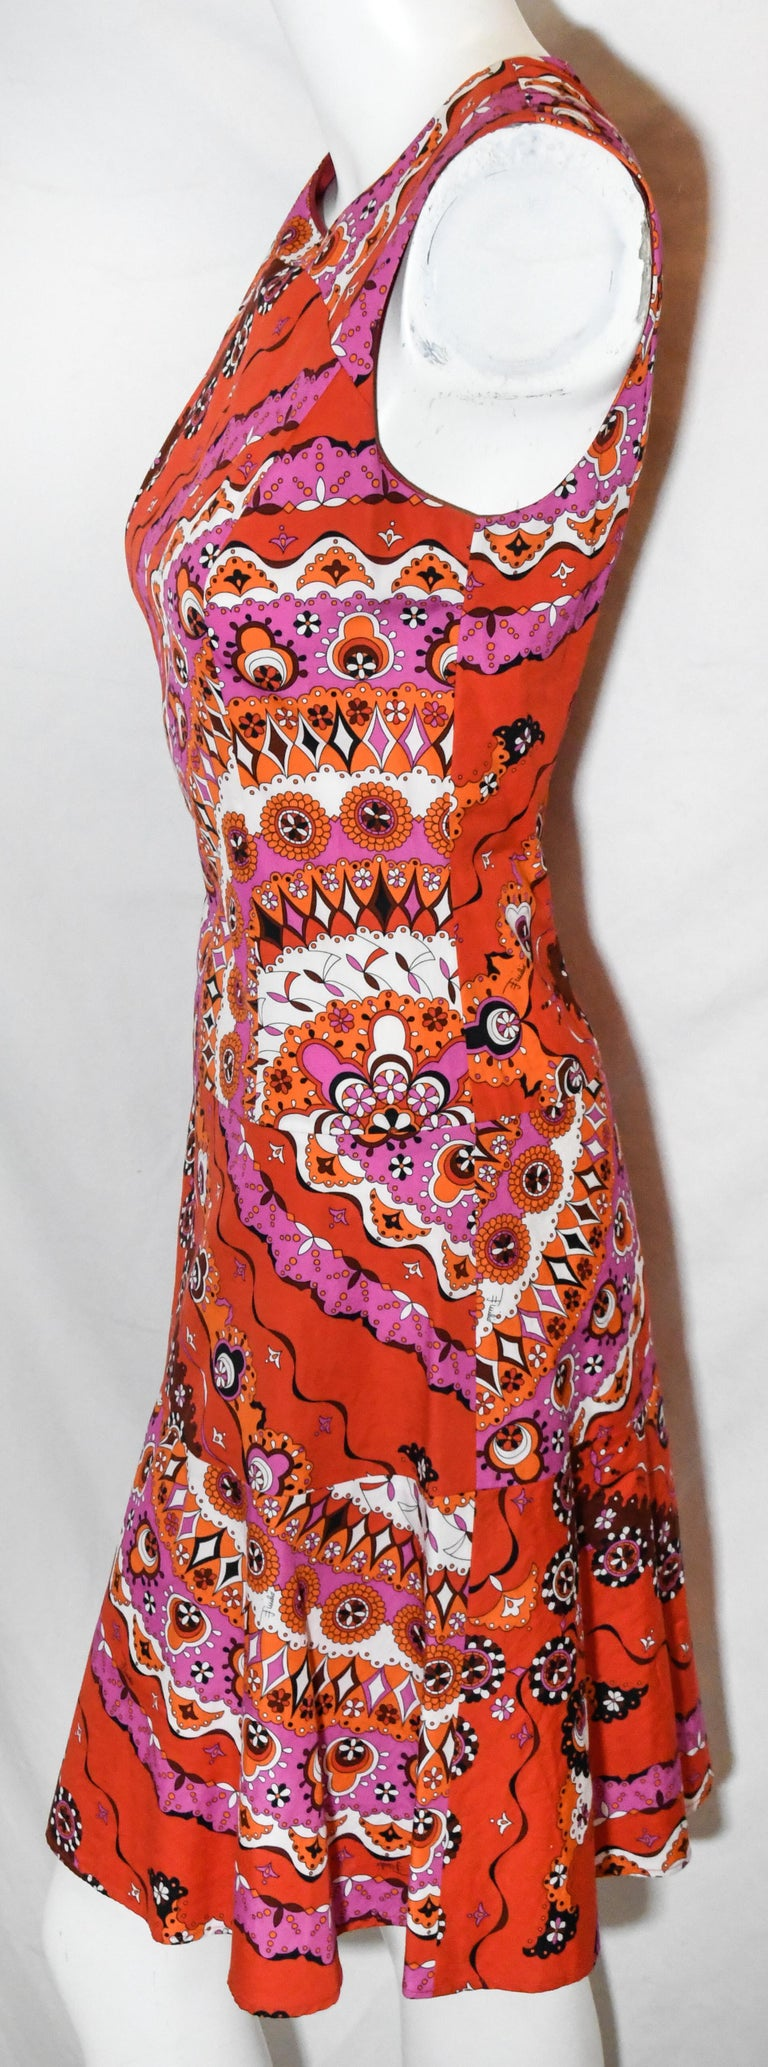 Emilio Pucci vibrant red print round neck dress includes a long gold tone zipper at back.  This dress is tapered to the body down to the hips then dress opens up to the hem.  This dress is not lined.  Dress is in excellent condition.  Made in Italy